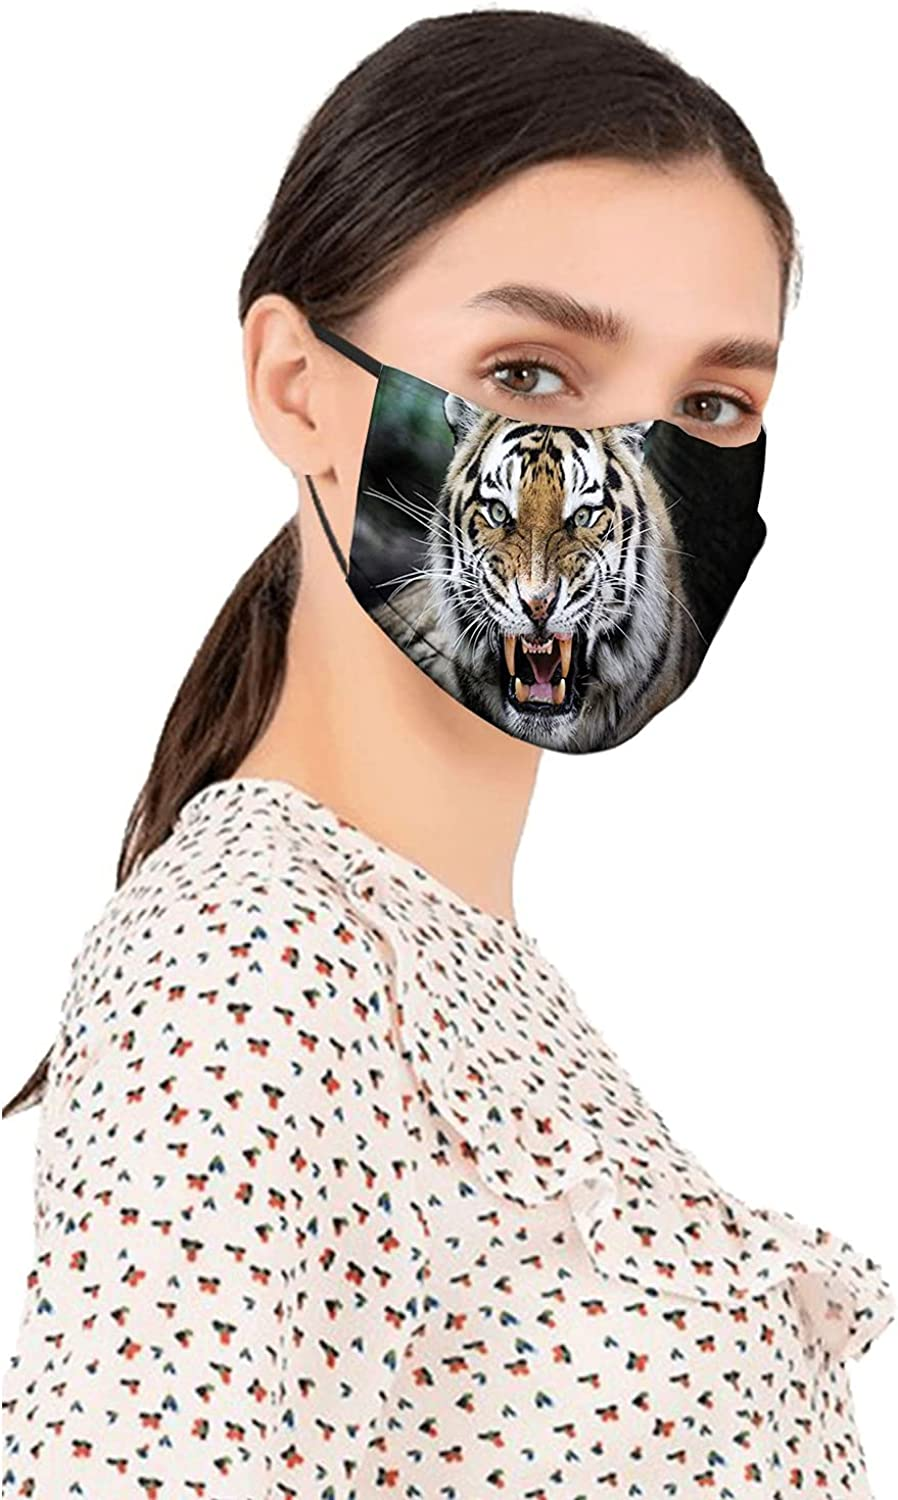 Made in USA face mask,Reusable Face Mask Washable Outdoor for Men and Women